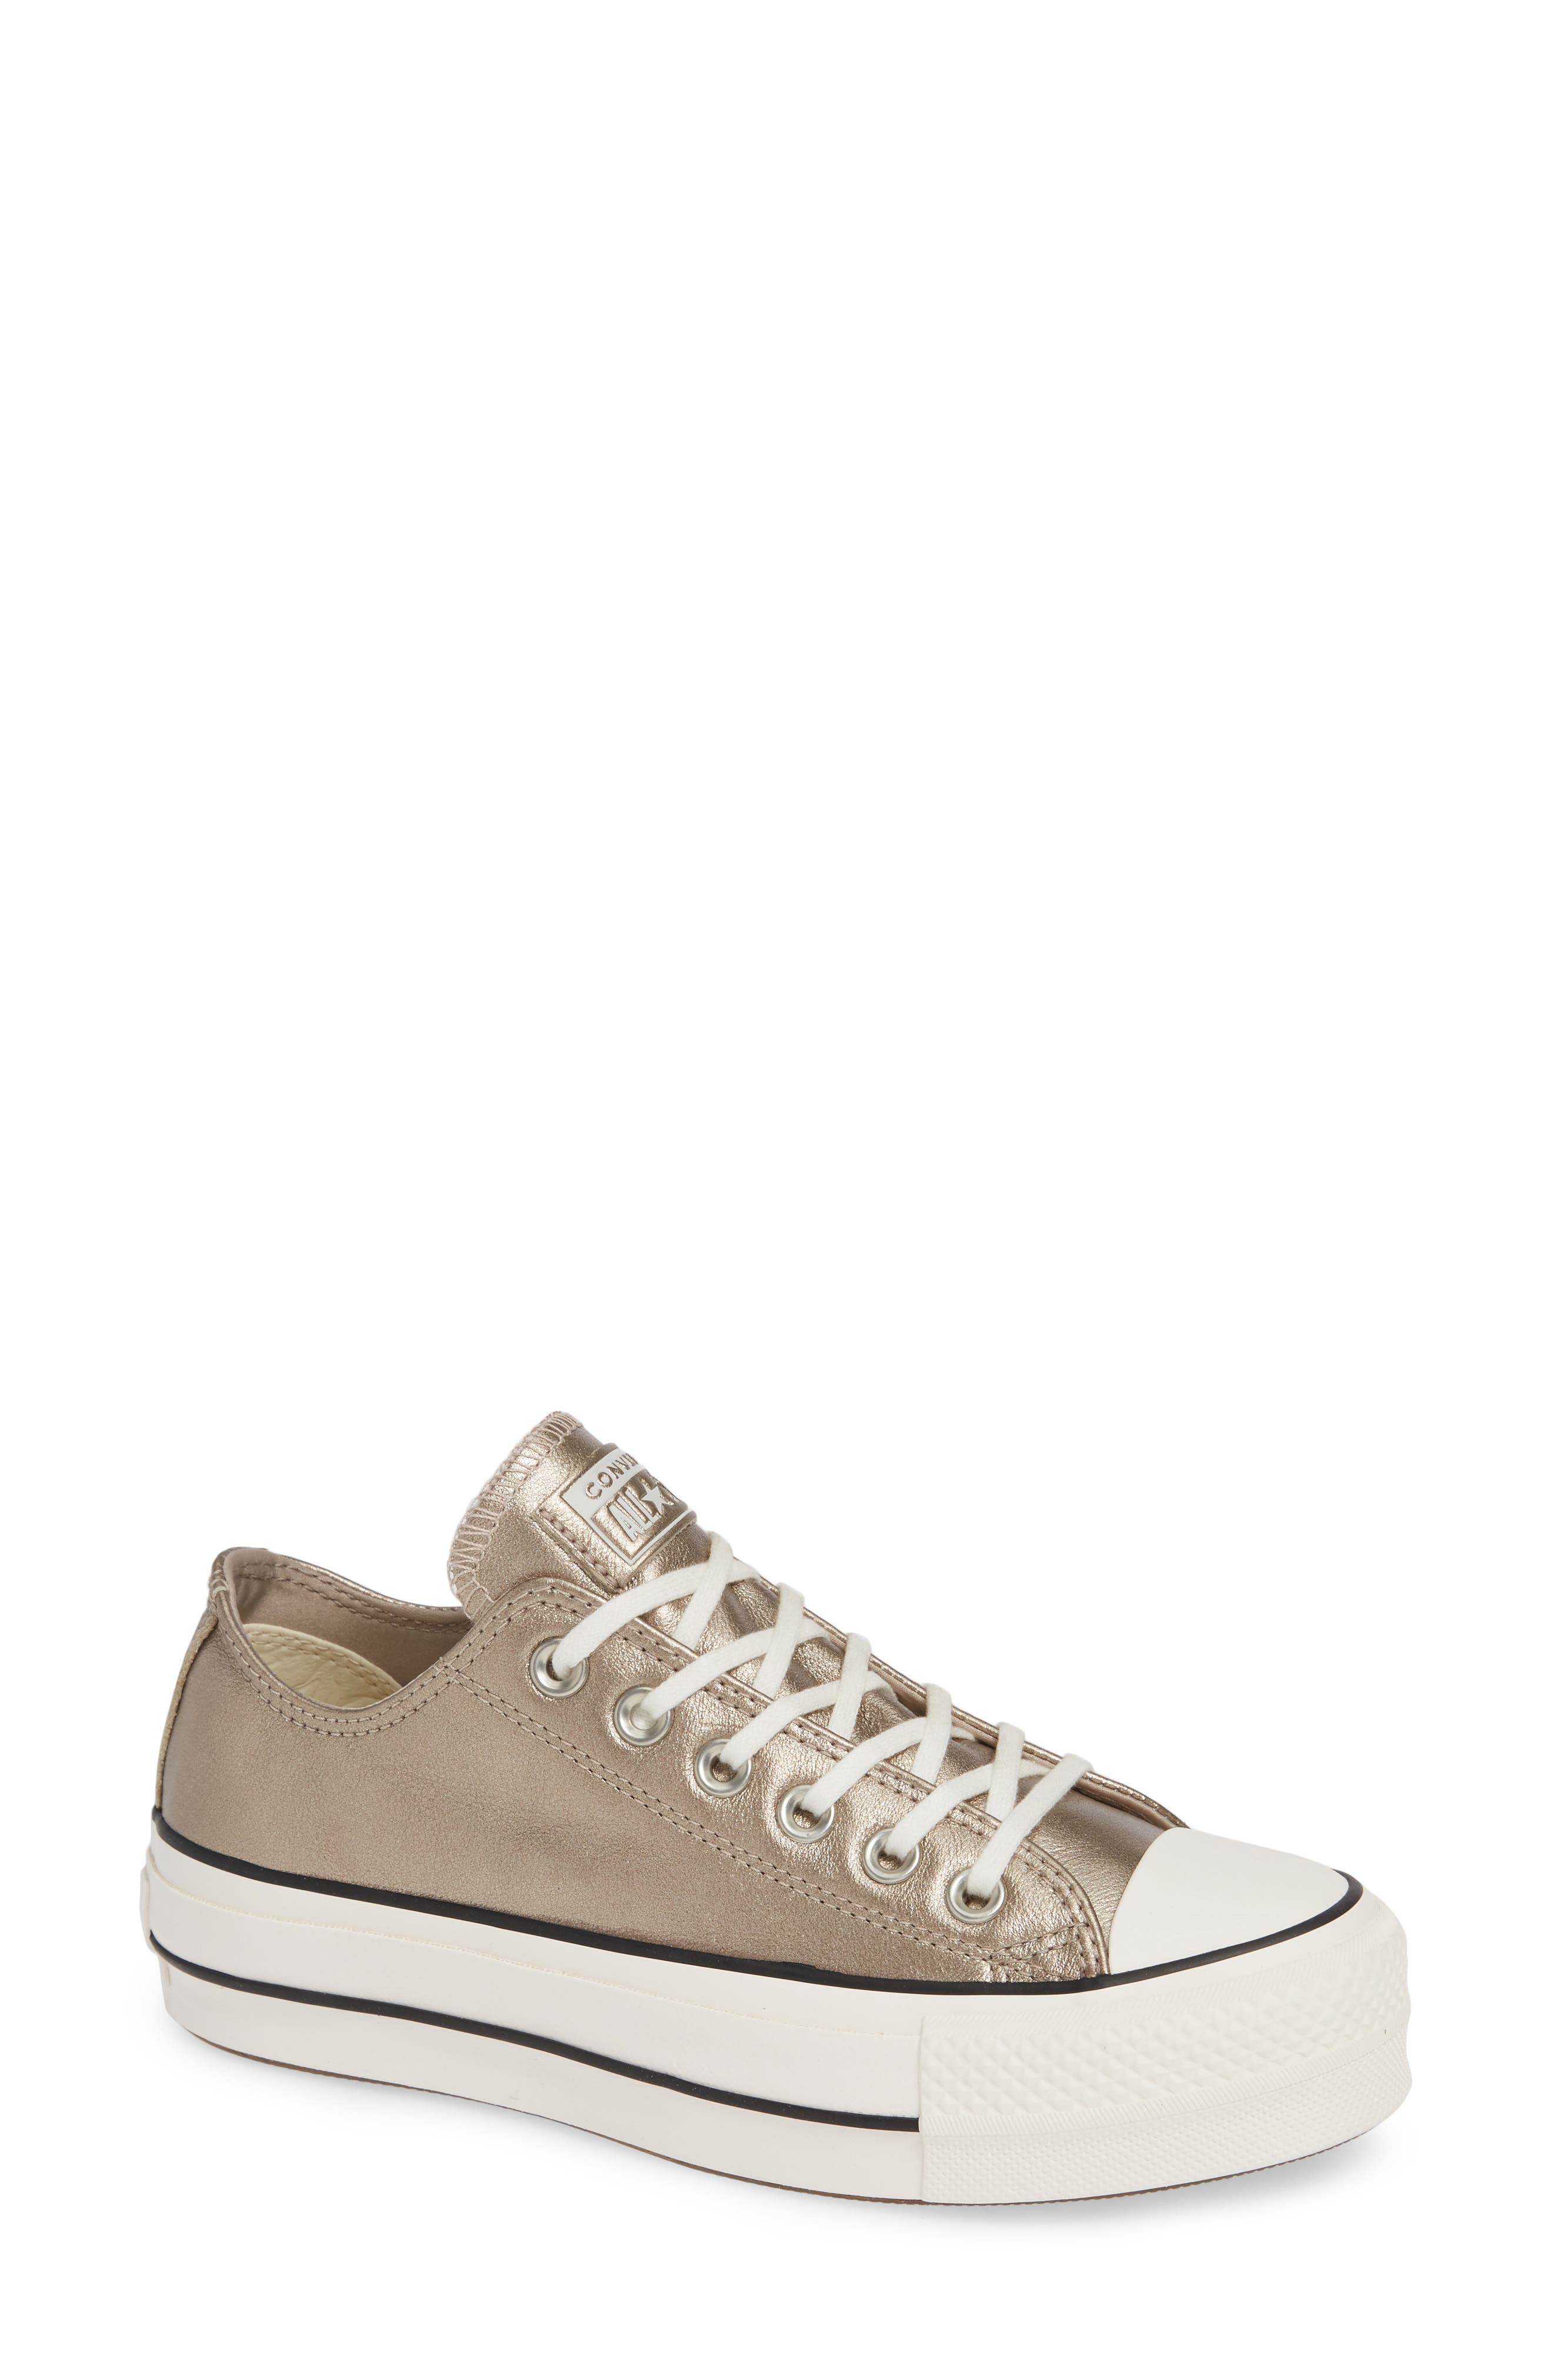 Prom Dress Leather Converse